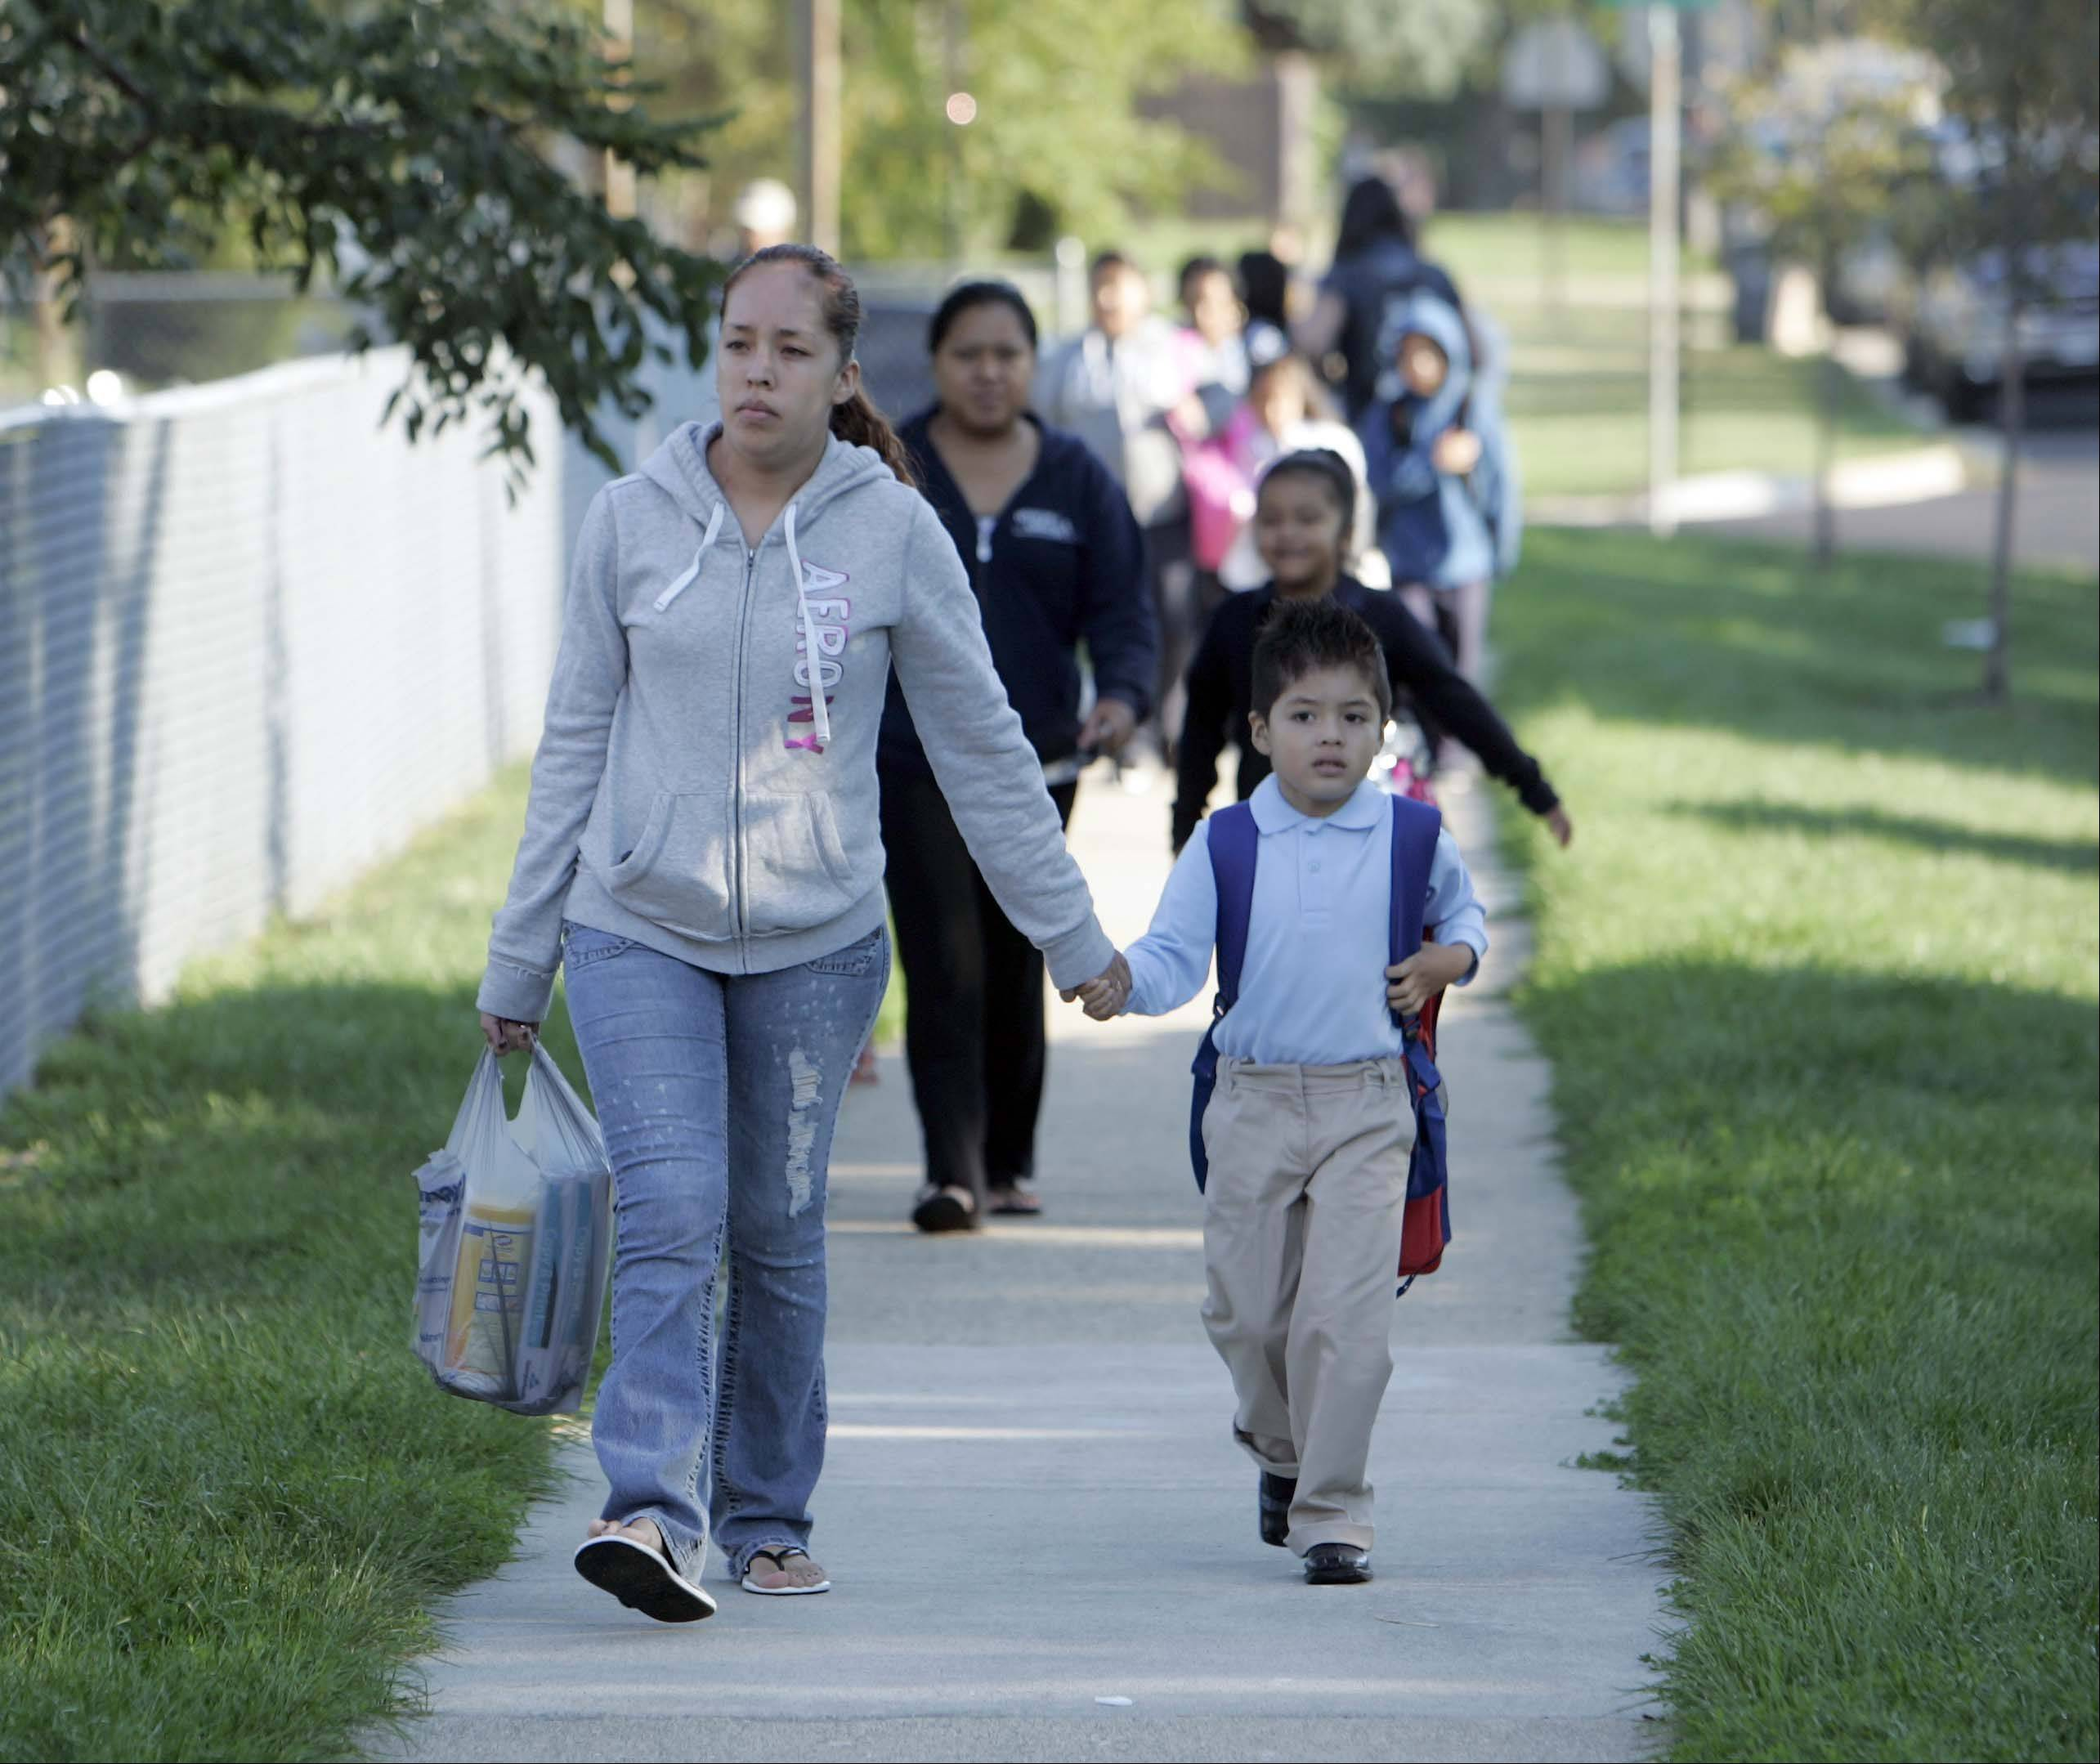 Five-year-old Erick Flores walks hand-in-hand with his mother Monica Urbieta to the first day of school at Gifford Elementary School in Elgin.